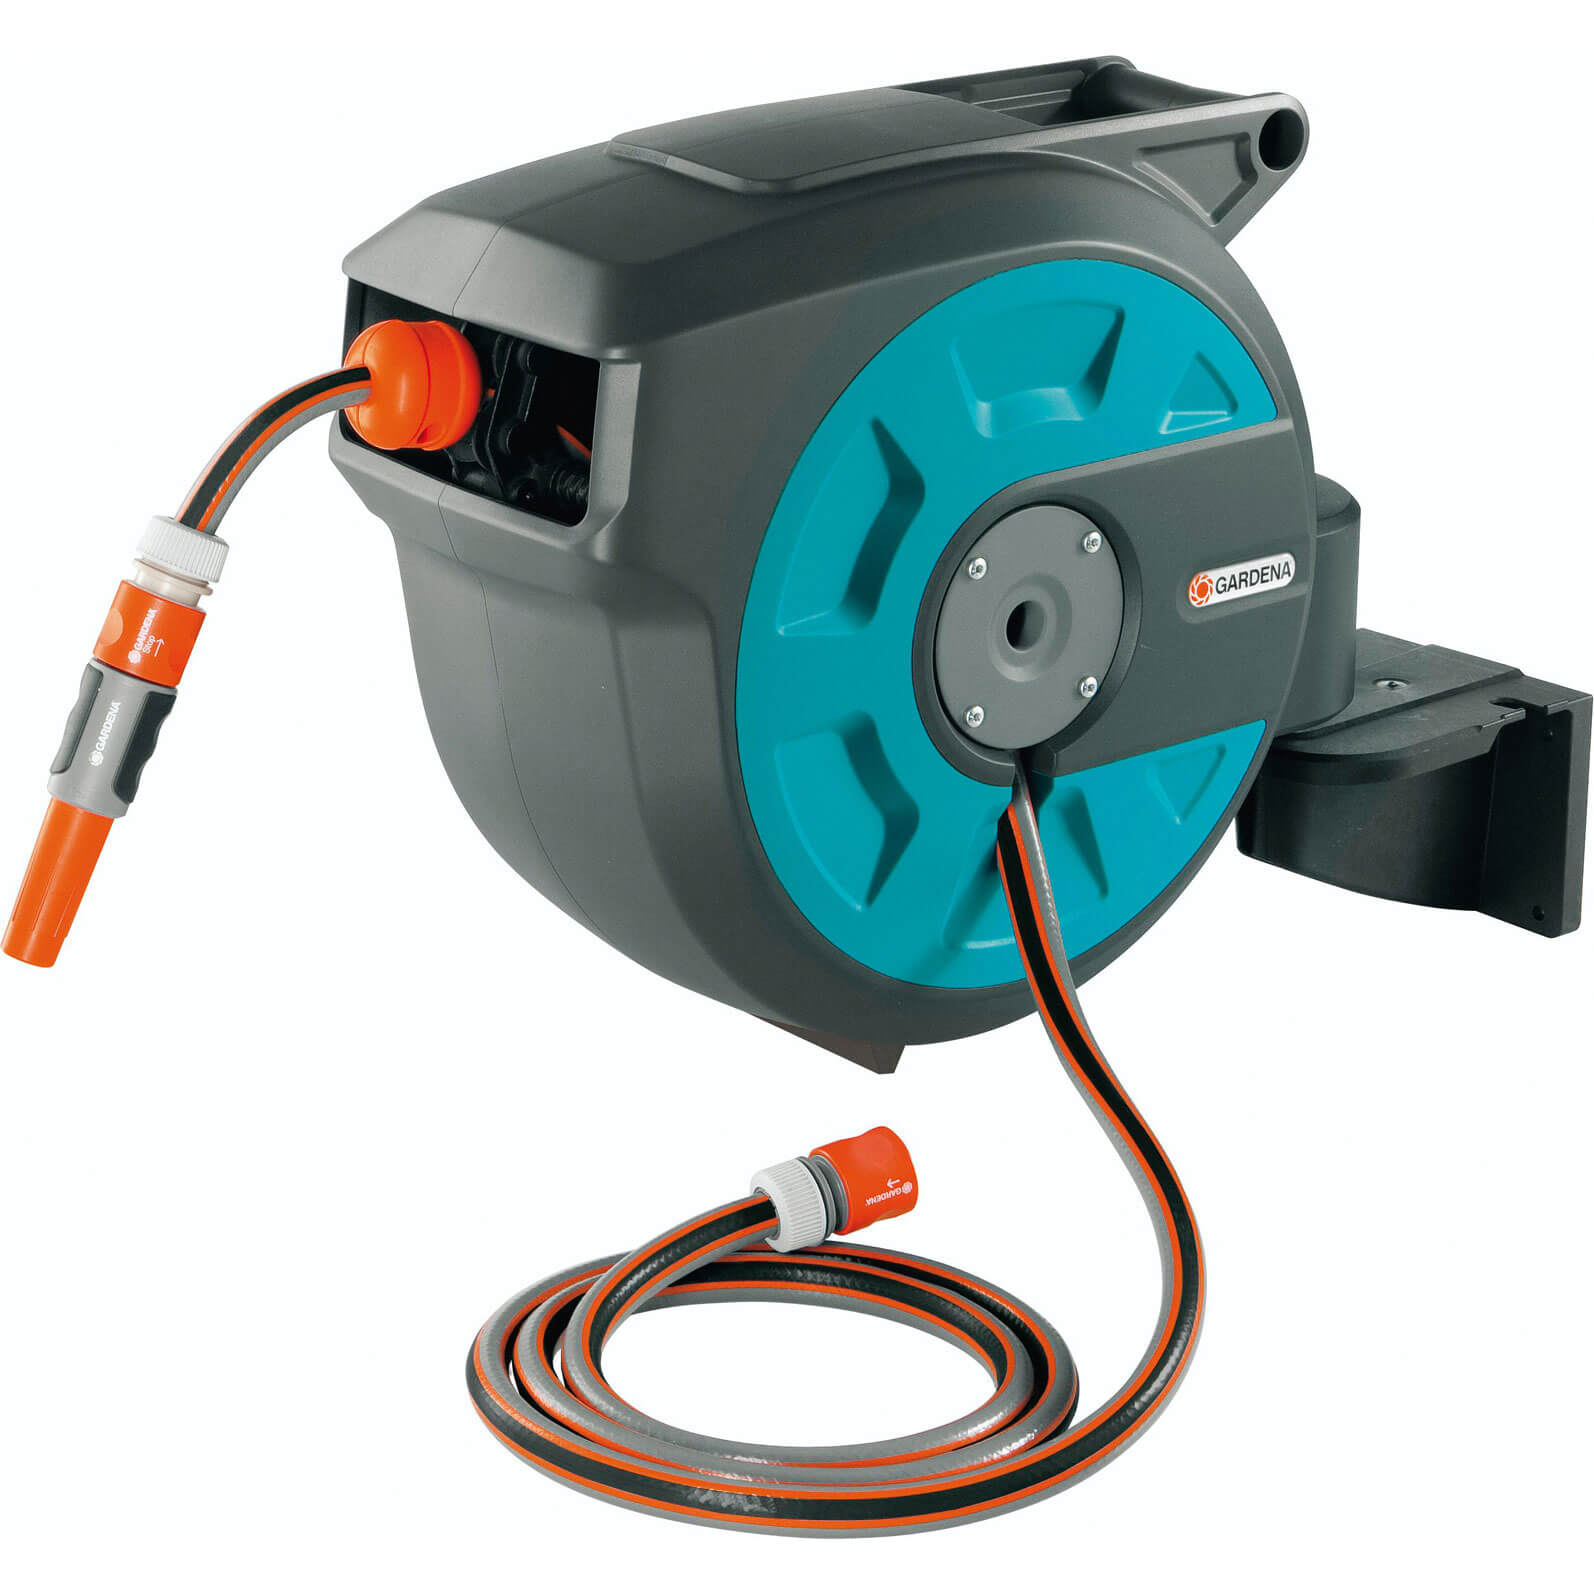 Gardena 15 Metre Wall Mounted Auto Hose Reel with 15 Metre Hose Pipe 12.5mm (1/2&quot)